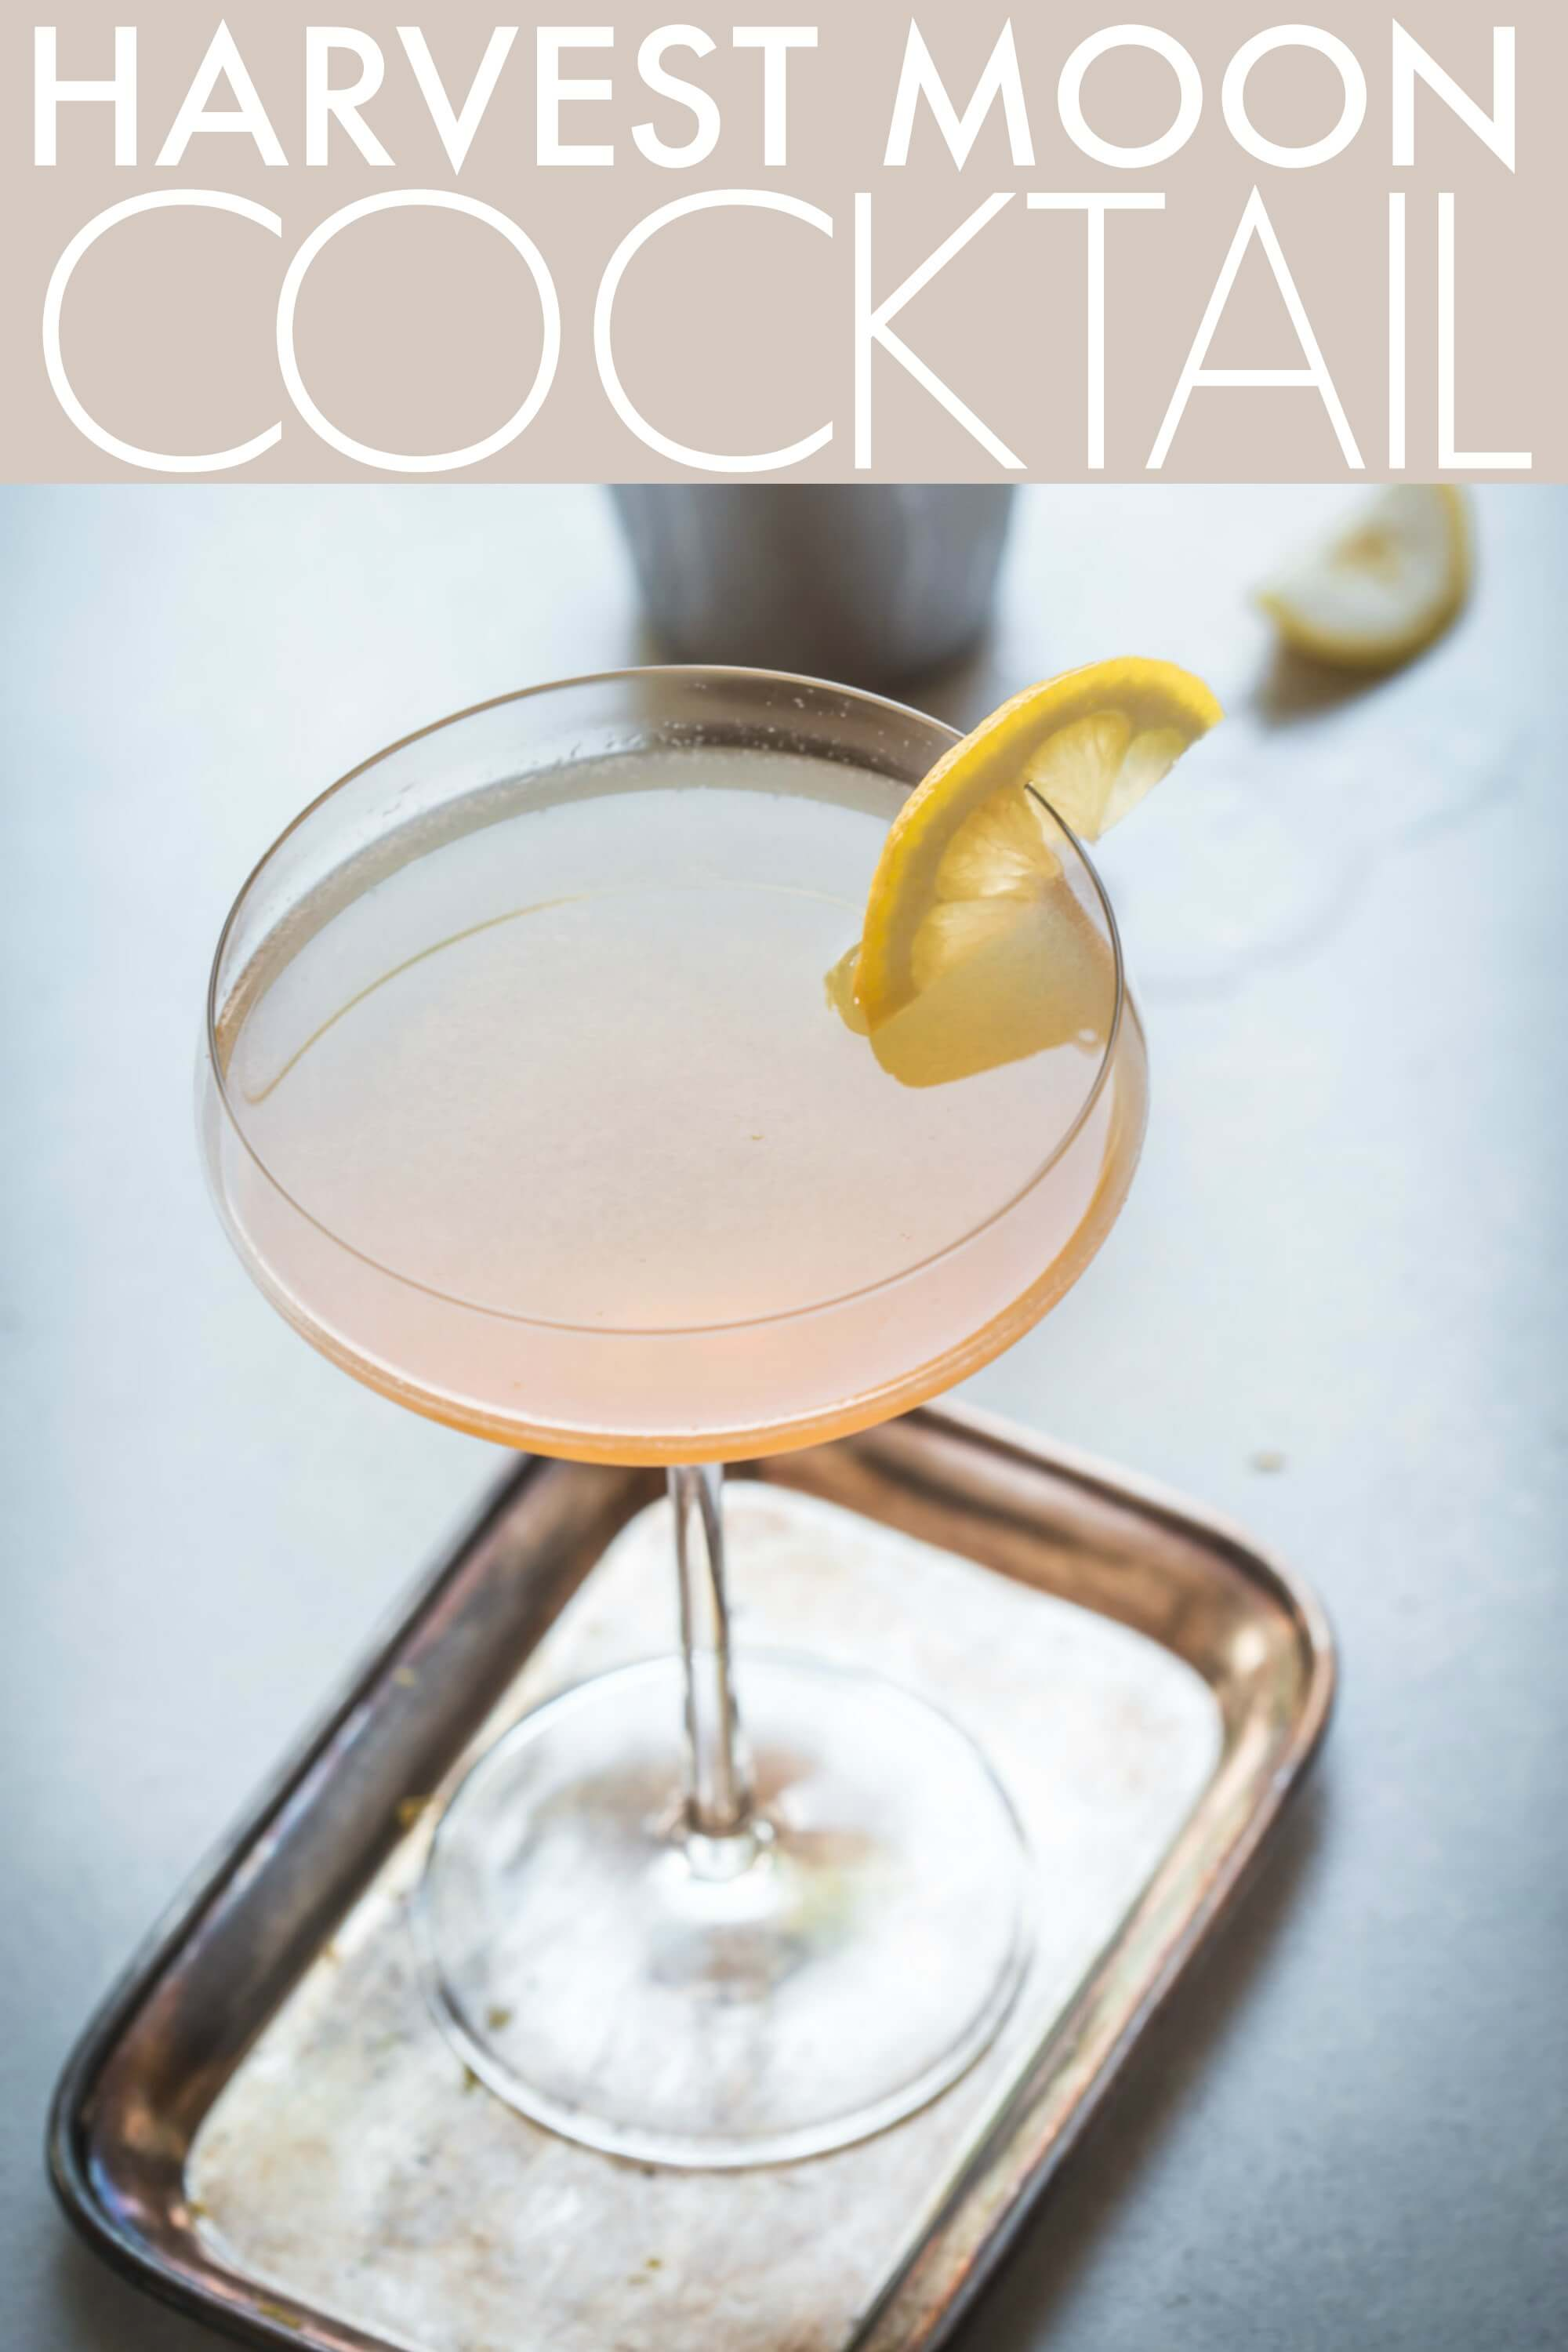 This Harvest Moon Applejack Cocktail is made with apple brandy, almond syrup (orgeat) and lemon juice. It's a delicious cocktail recipe that's served straight up in a martini glass. #harvestmooncocktail #cocktail #applejackcocktail #applejack